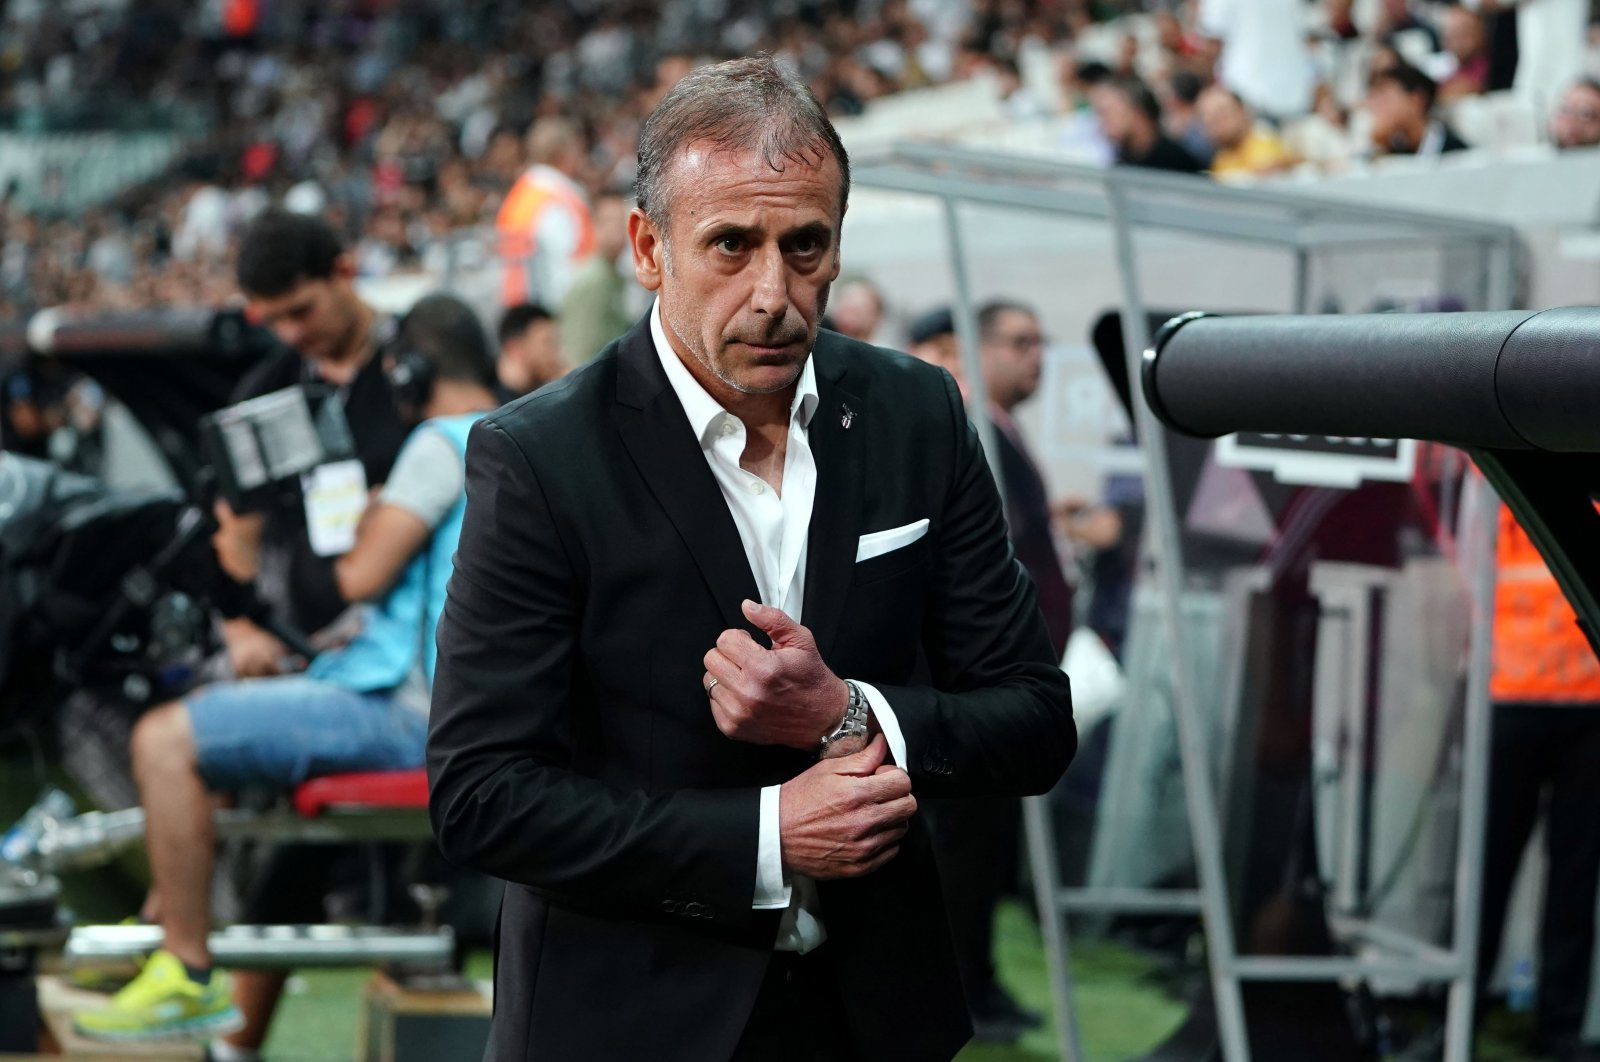 This file photo provided on July 11, 2019 shows coach Abdullah Avcı during a match. (IHA Photo)